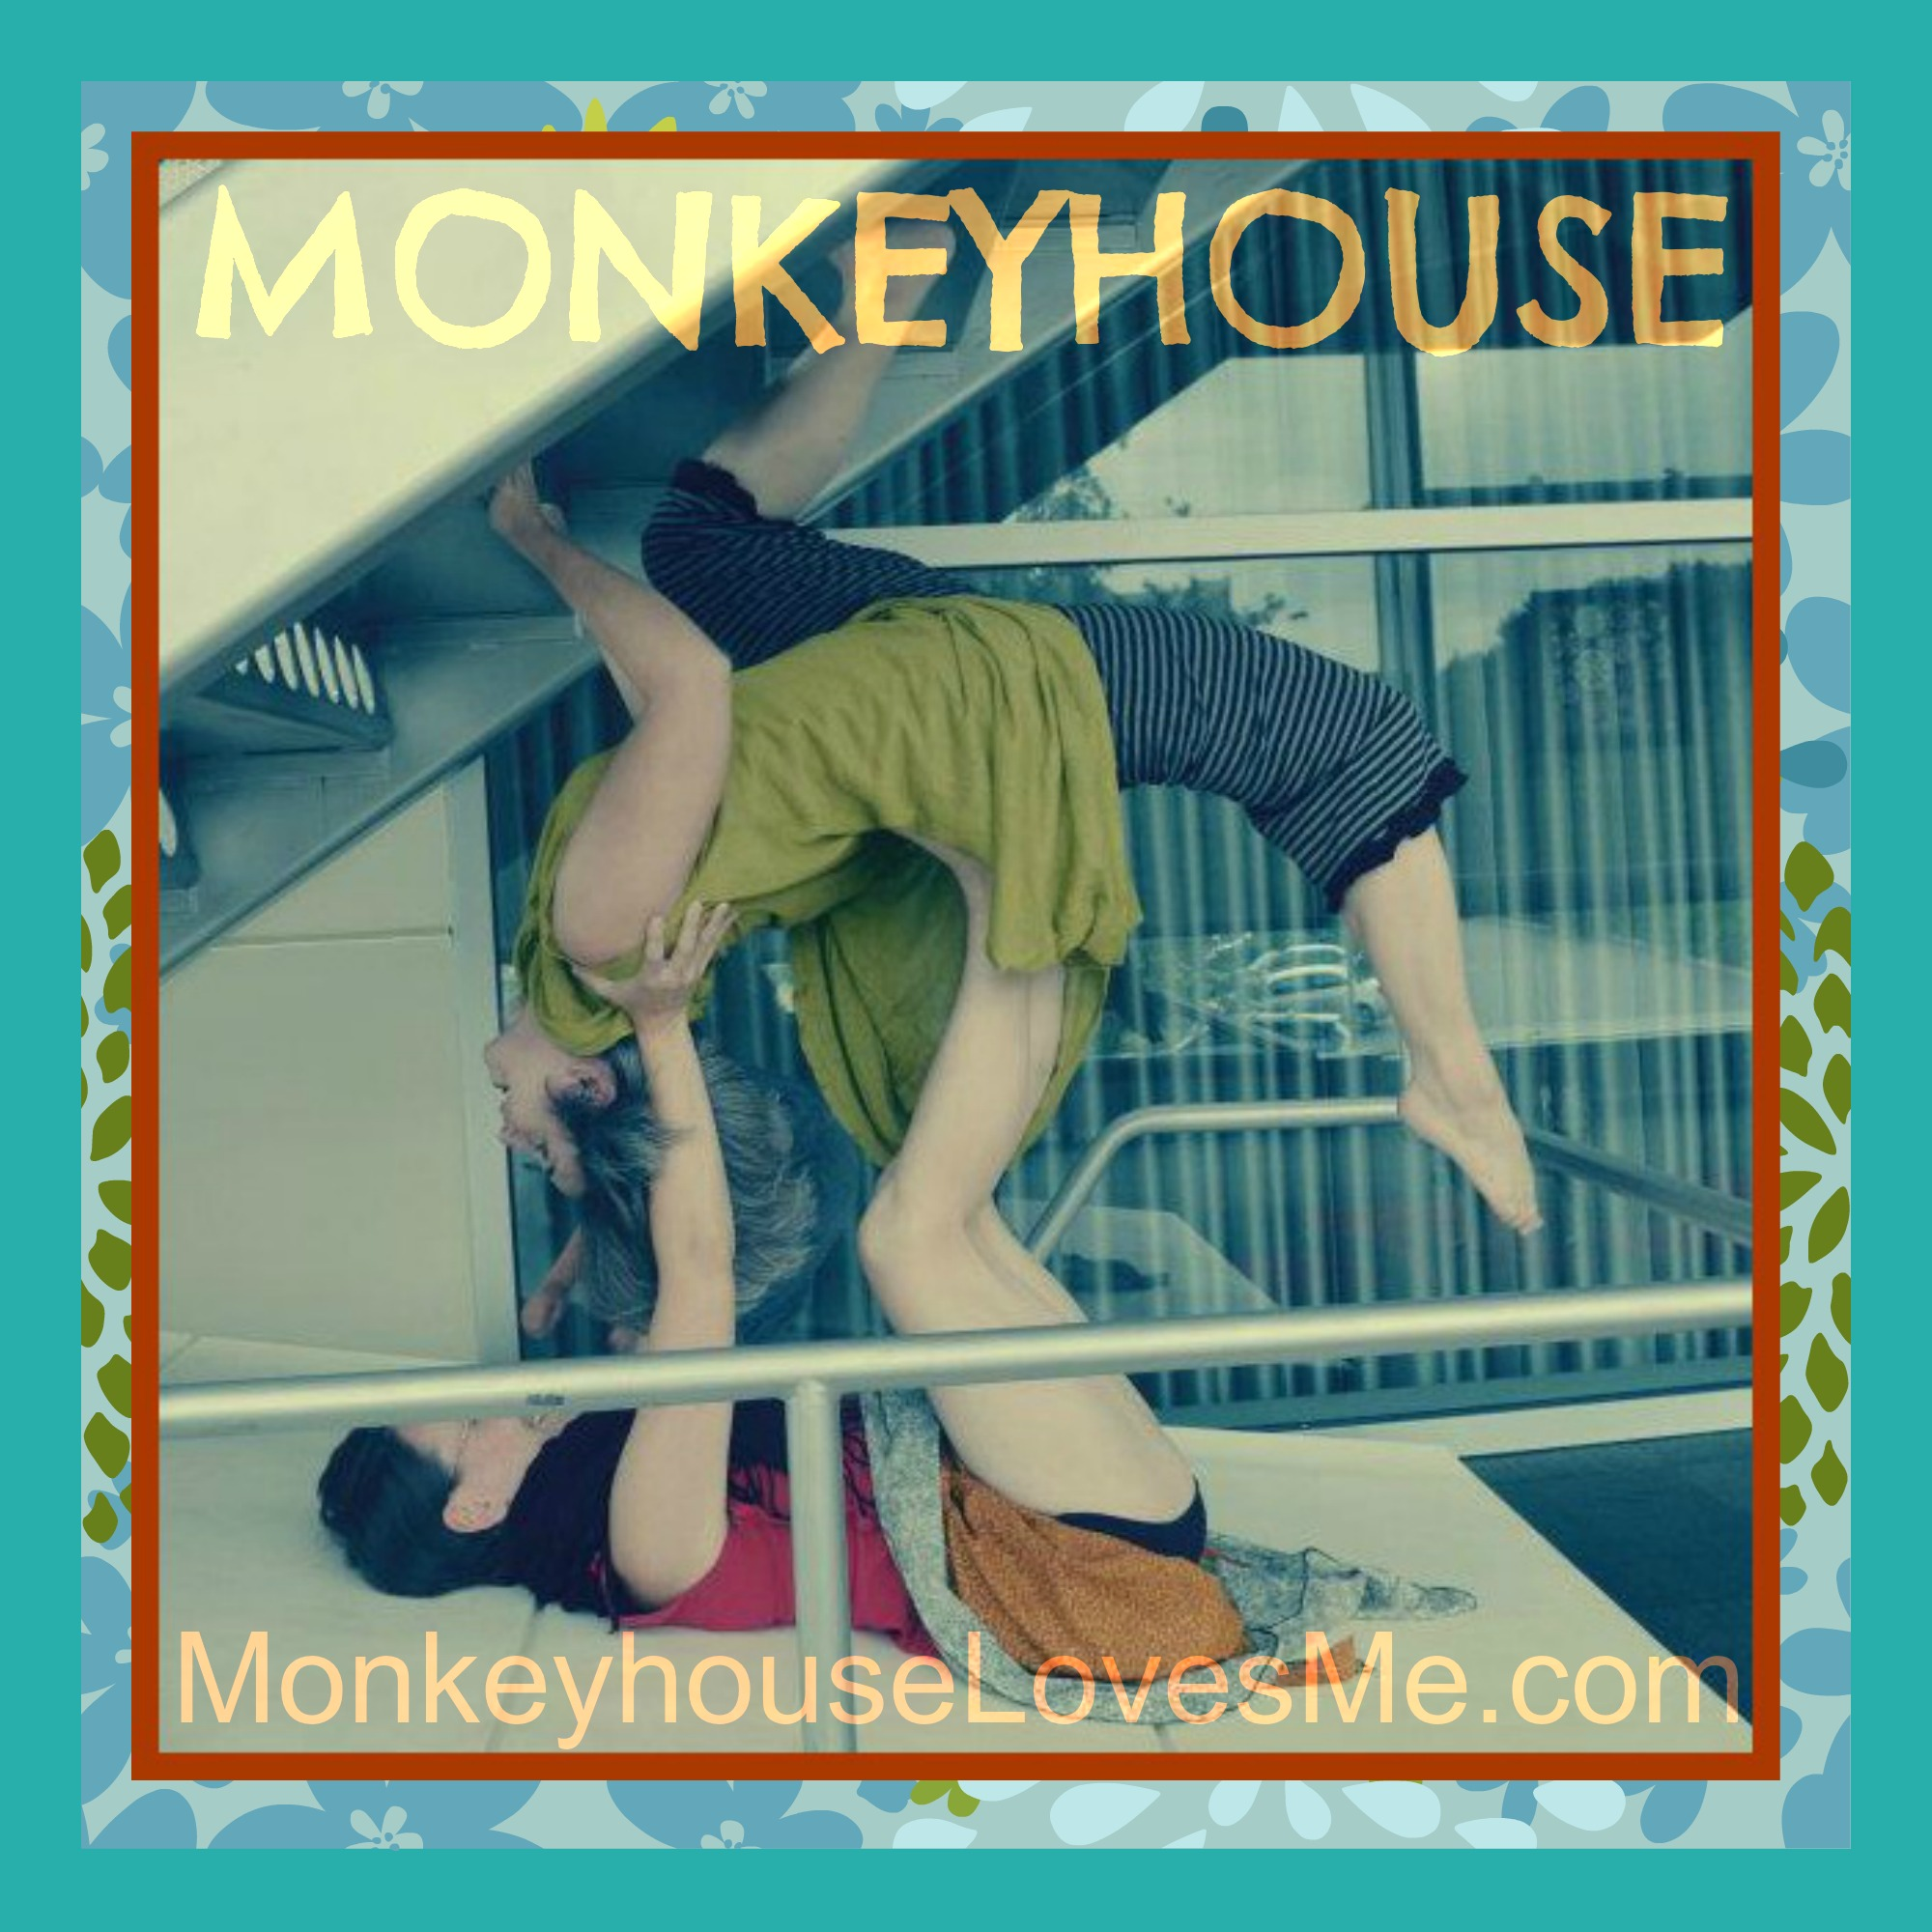 Monkeyhouse's Connect 2 Choreography Blog Interview, October 2014